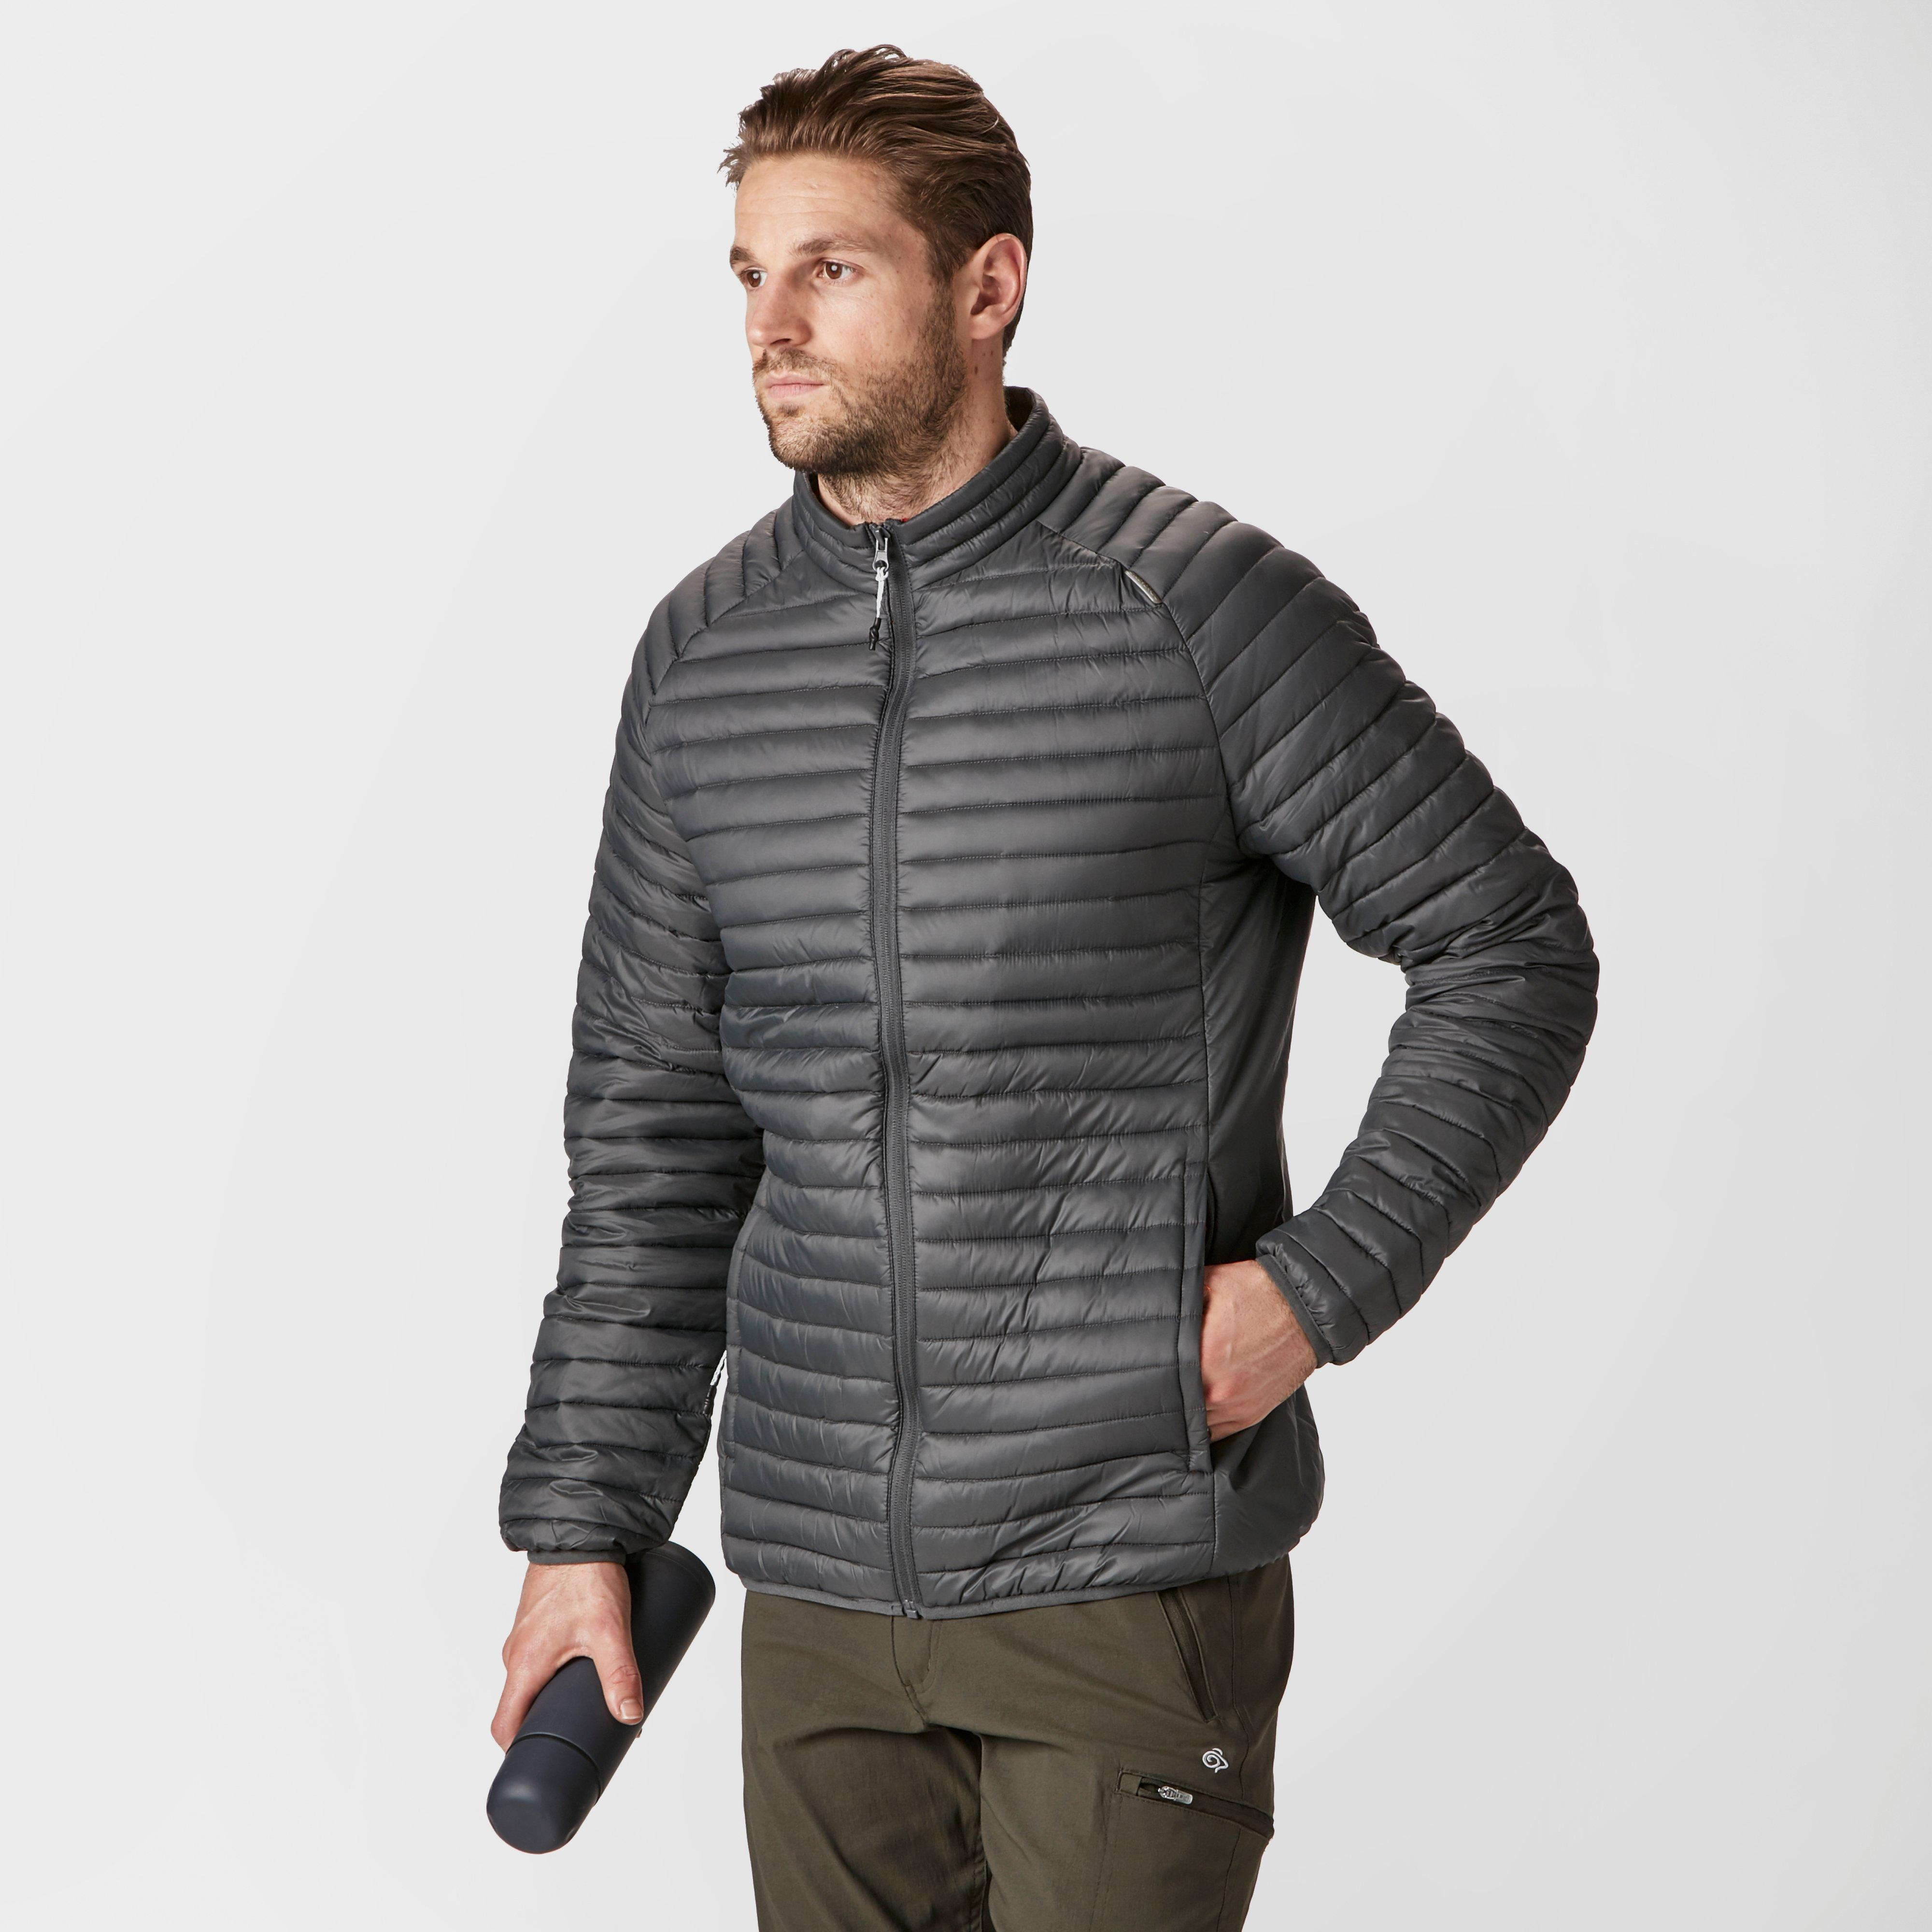 fashion quilted gallery jcrew trends sussex crew s jacket coats mens quilt men of j jackets tall